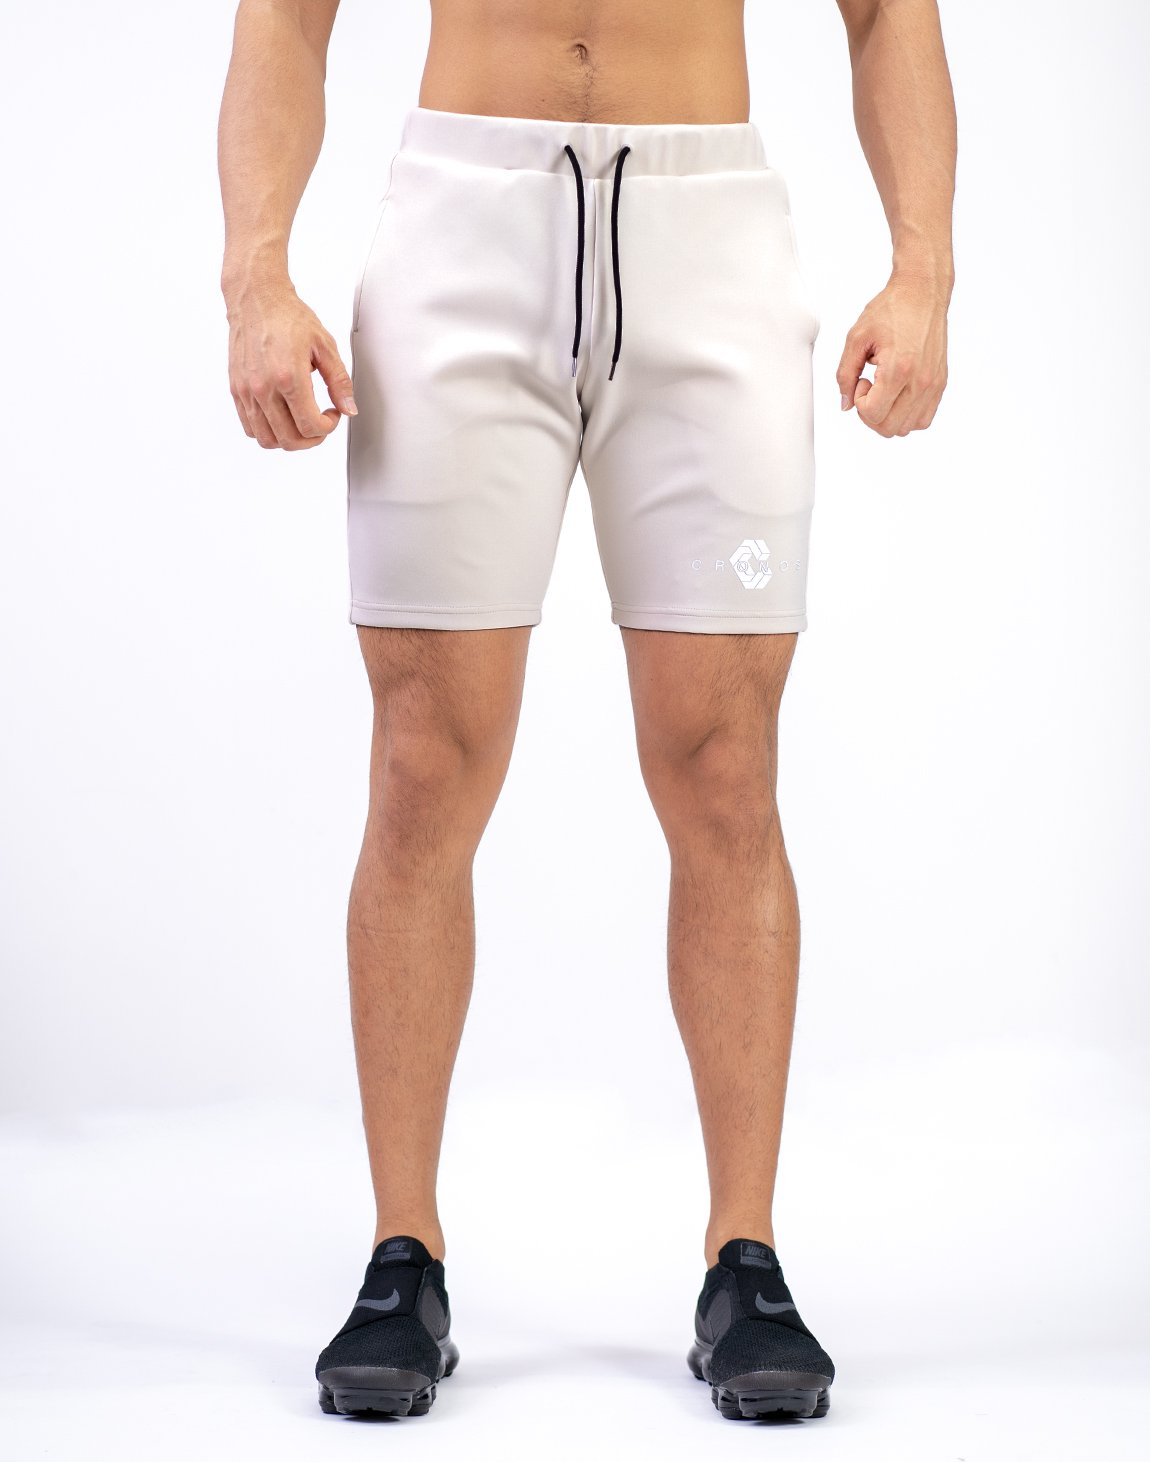 <img class='new_mark_img1' src='https://img.shop-pro.jp/img/new/icons55.gif' style='border:none;display:inline;margin:0px;padding:0px;width:auto;' />CRONOS NEW LOGO SHORTS  BEIGE